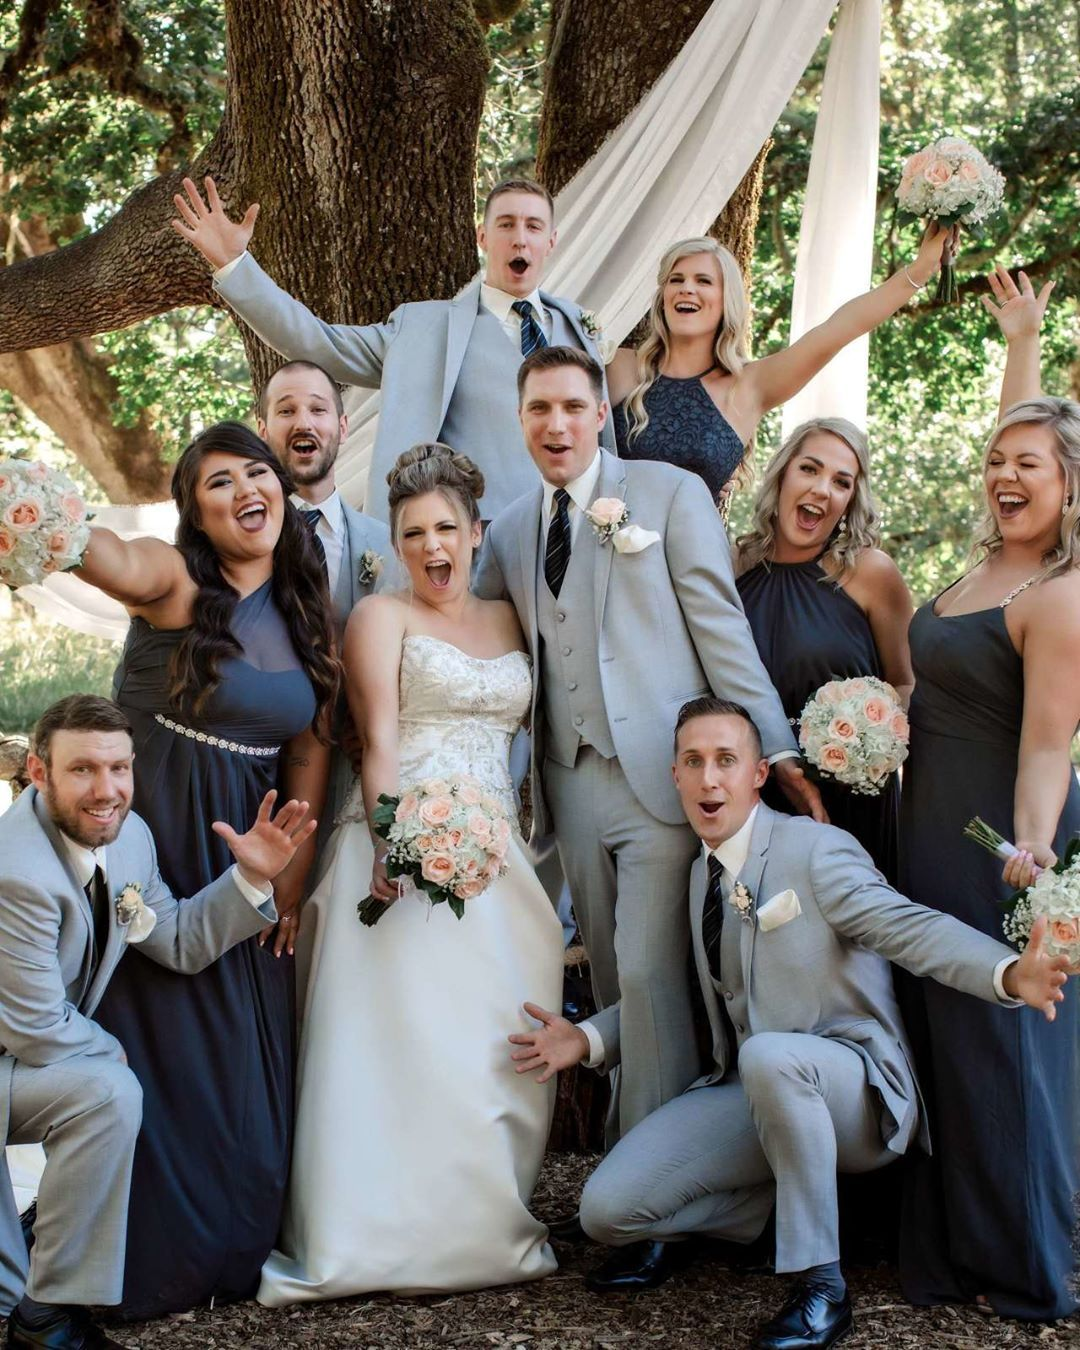 Must Have Wedding Party Photos Must Have Poses For The Wedding Party Best Wedding P Wedding Photography Styles Wedding Parties Pictures Wedding Photographers